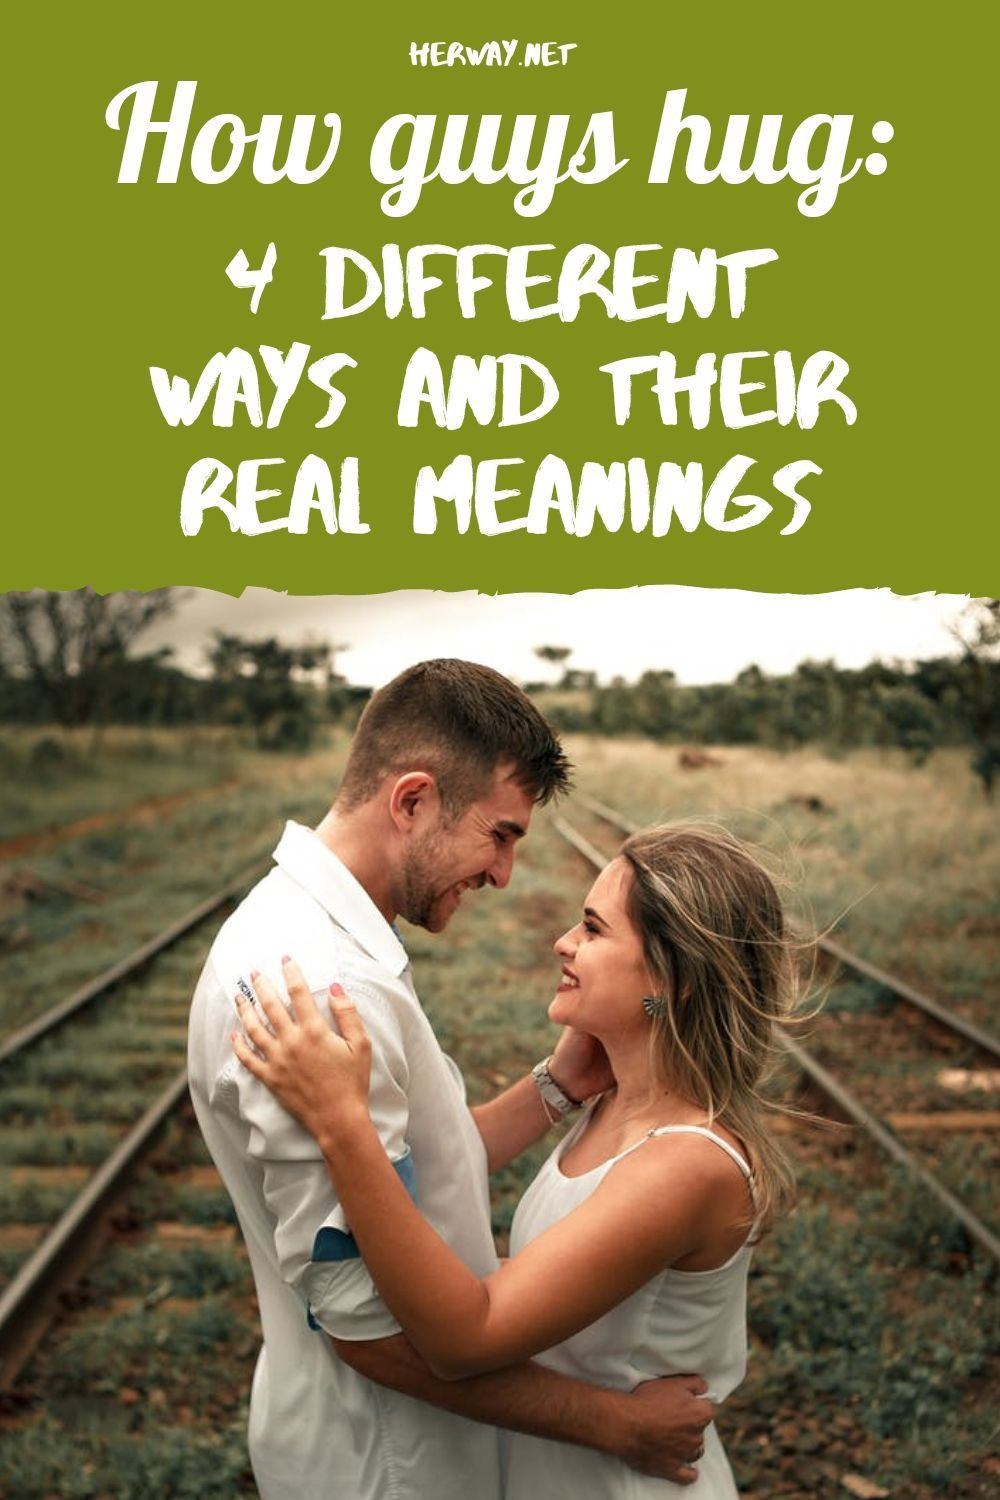 How Guys Hug: 4 Different Ways And Their Real Meanings in